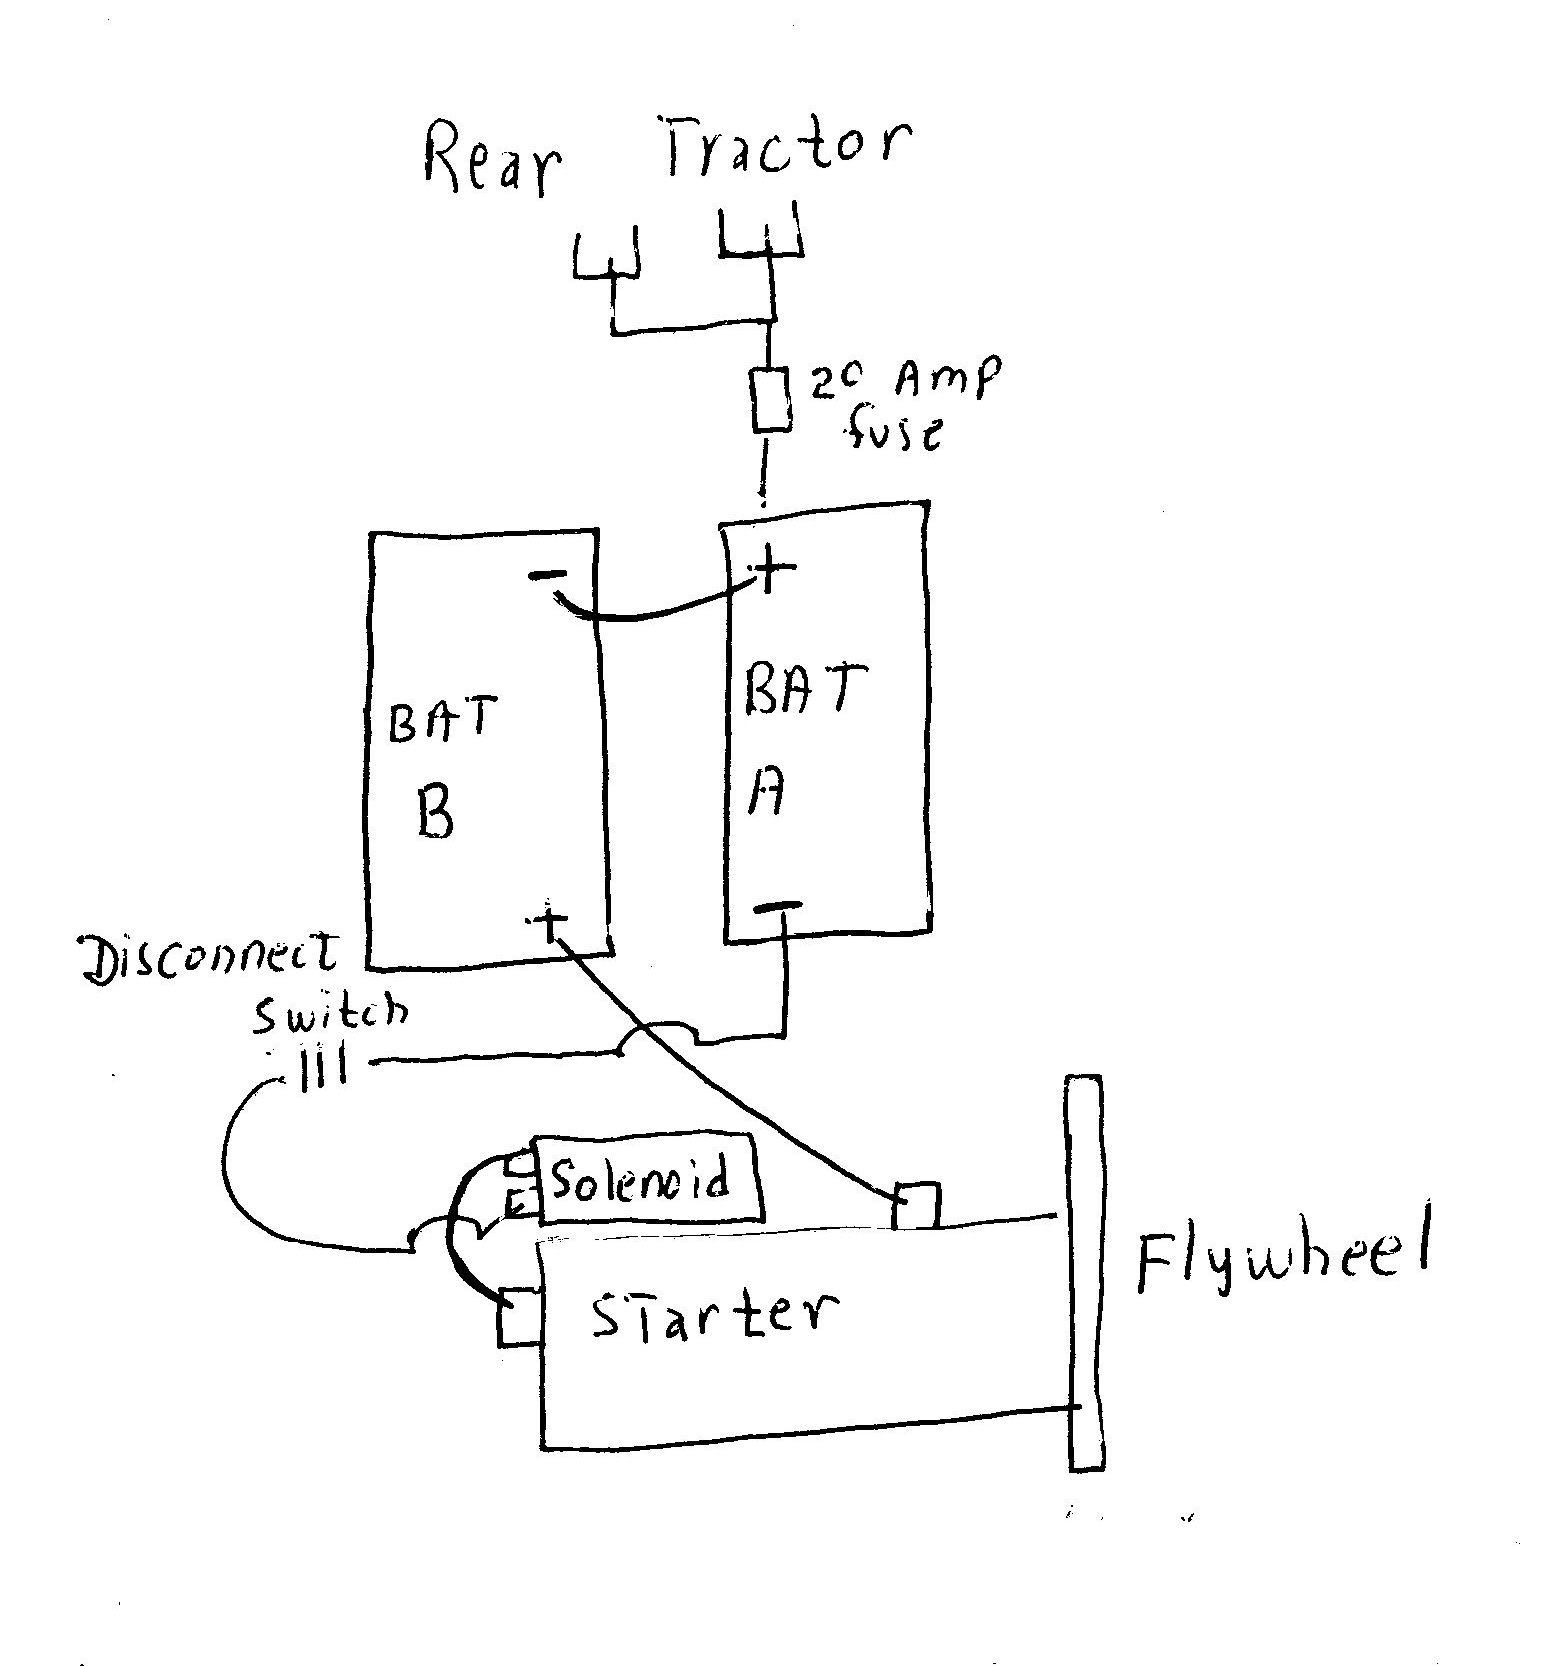 battery_hookup the john deere 24 volt electrical system explained 24 volt starter solenoid wiring diagram at edmiracle.co